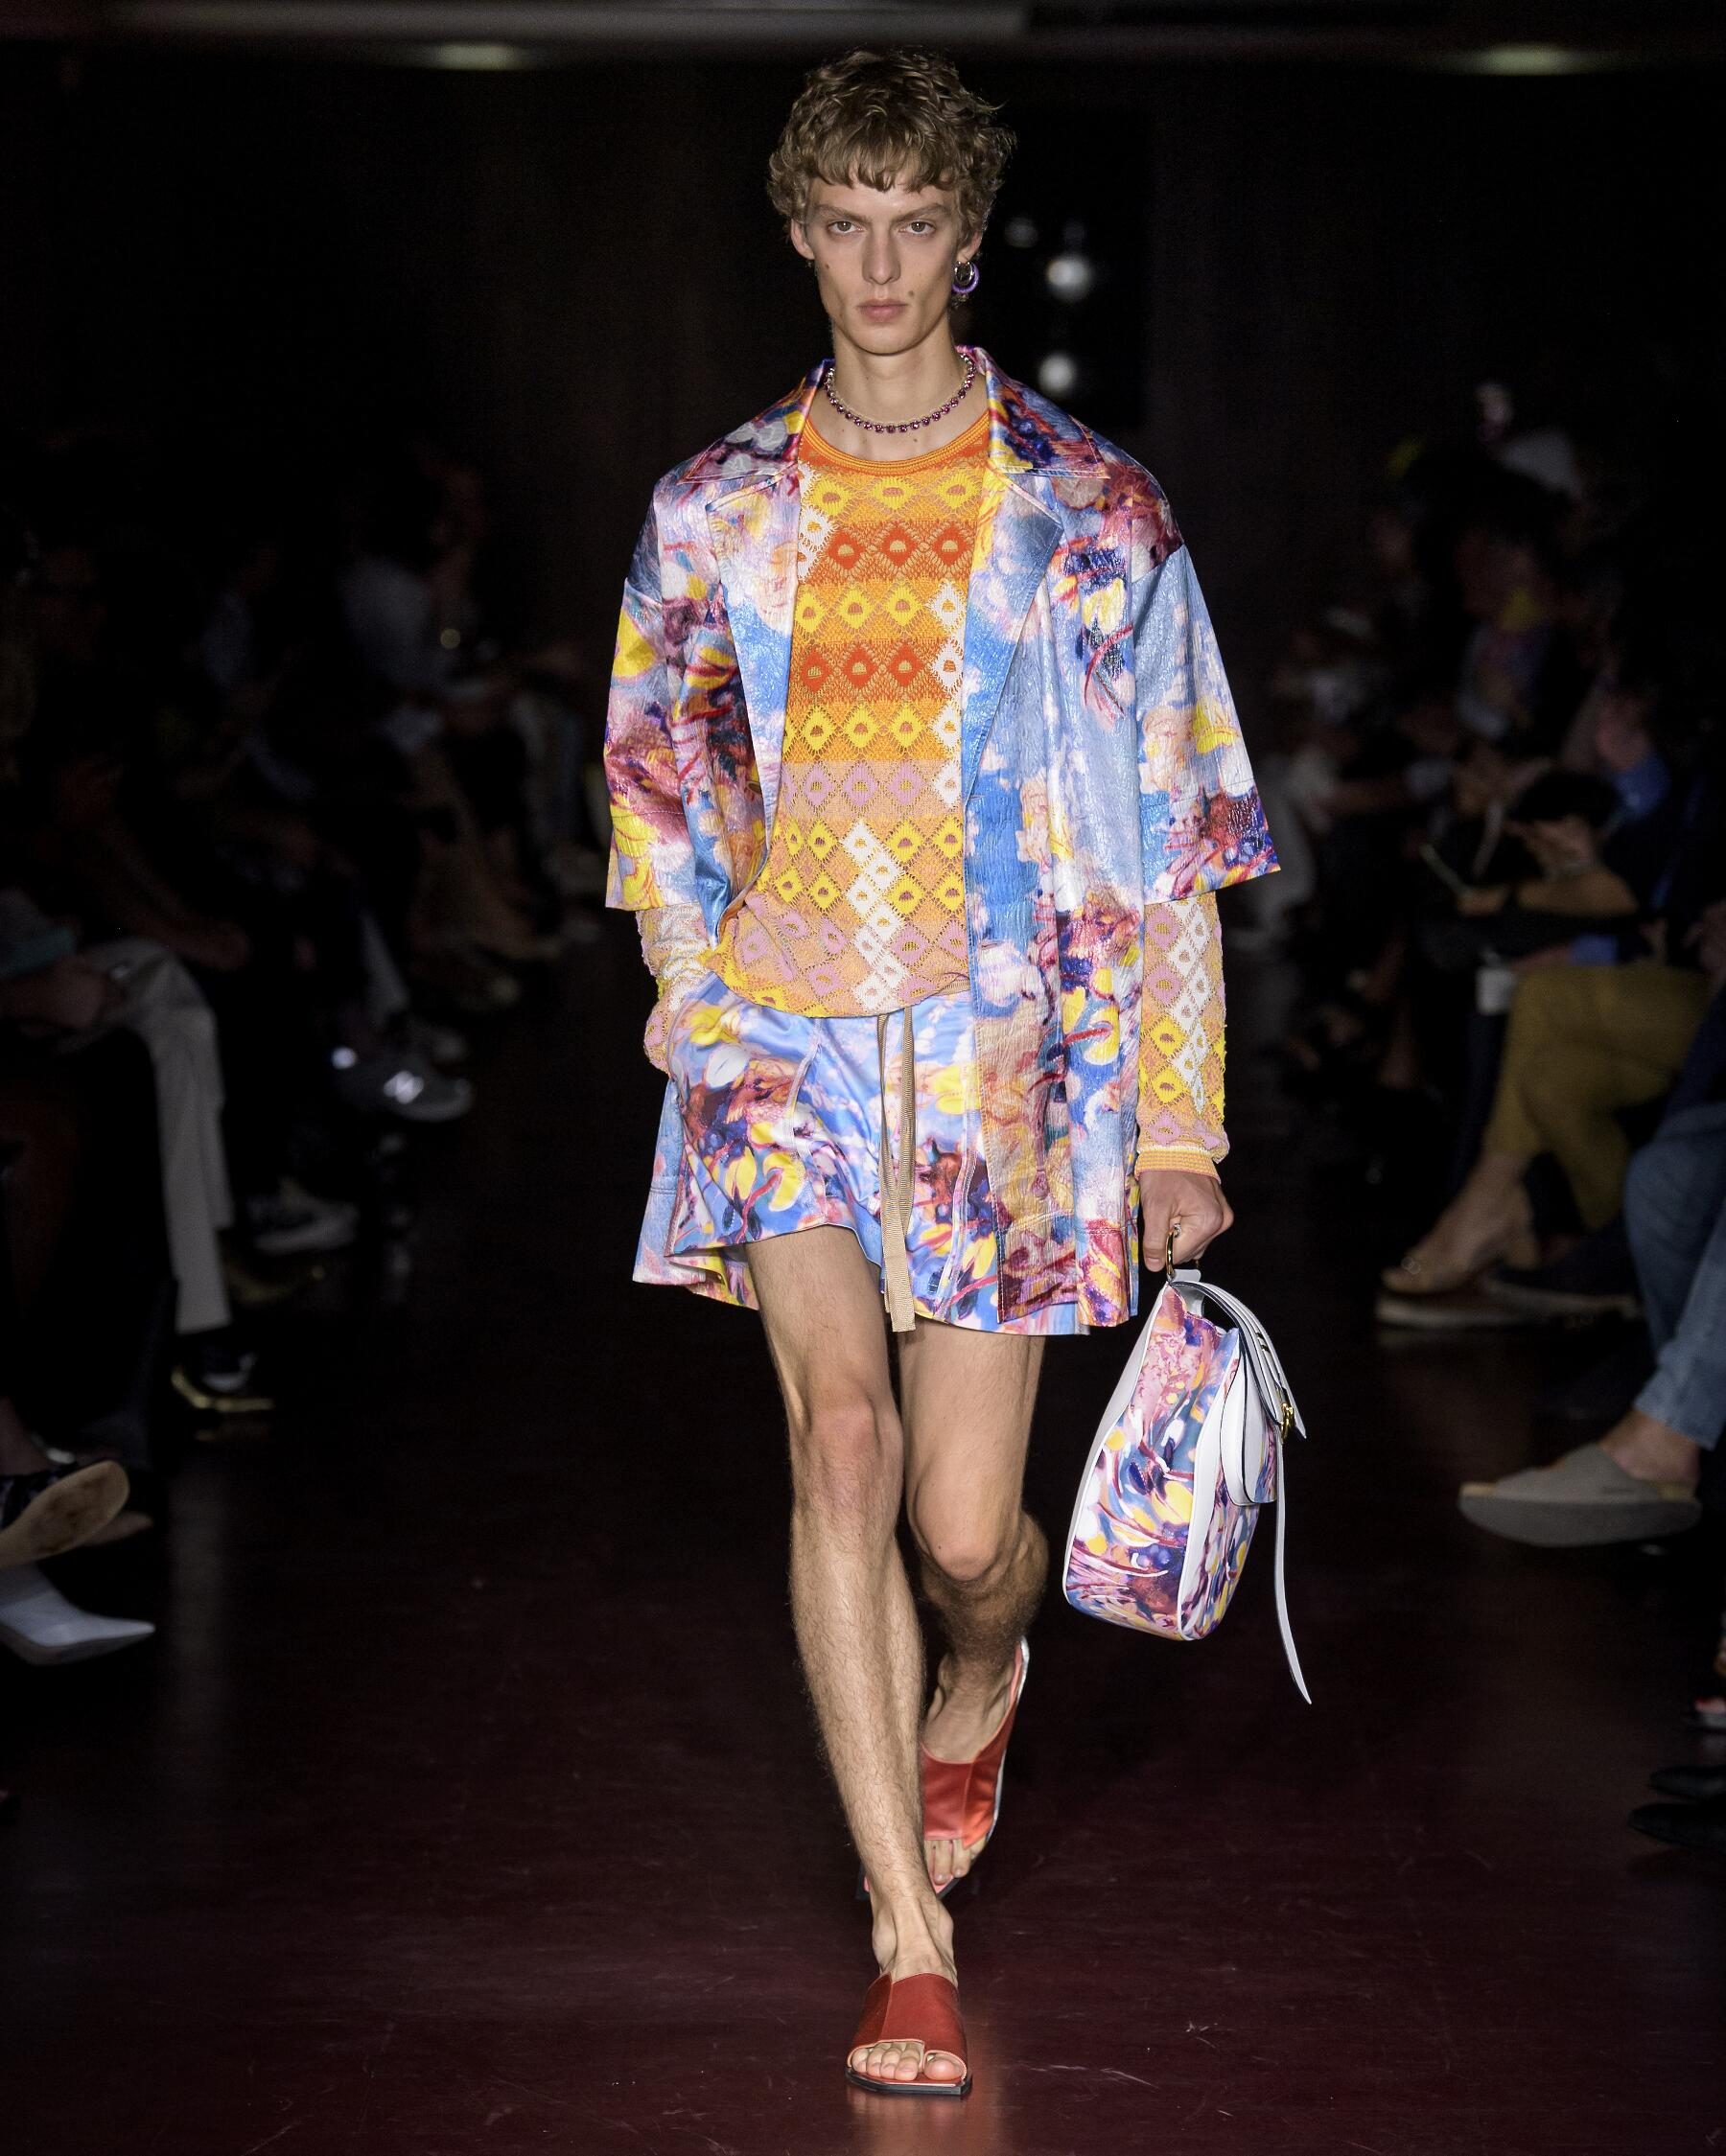 Catwalk Peter Pilotto Man Fashion Show Summer 2020